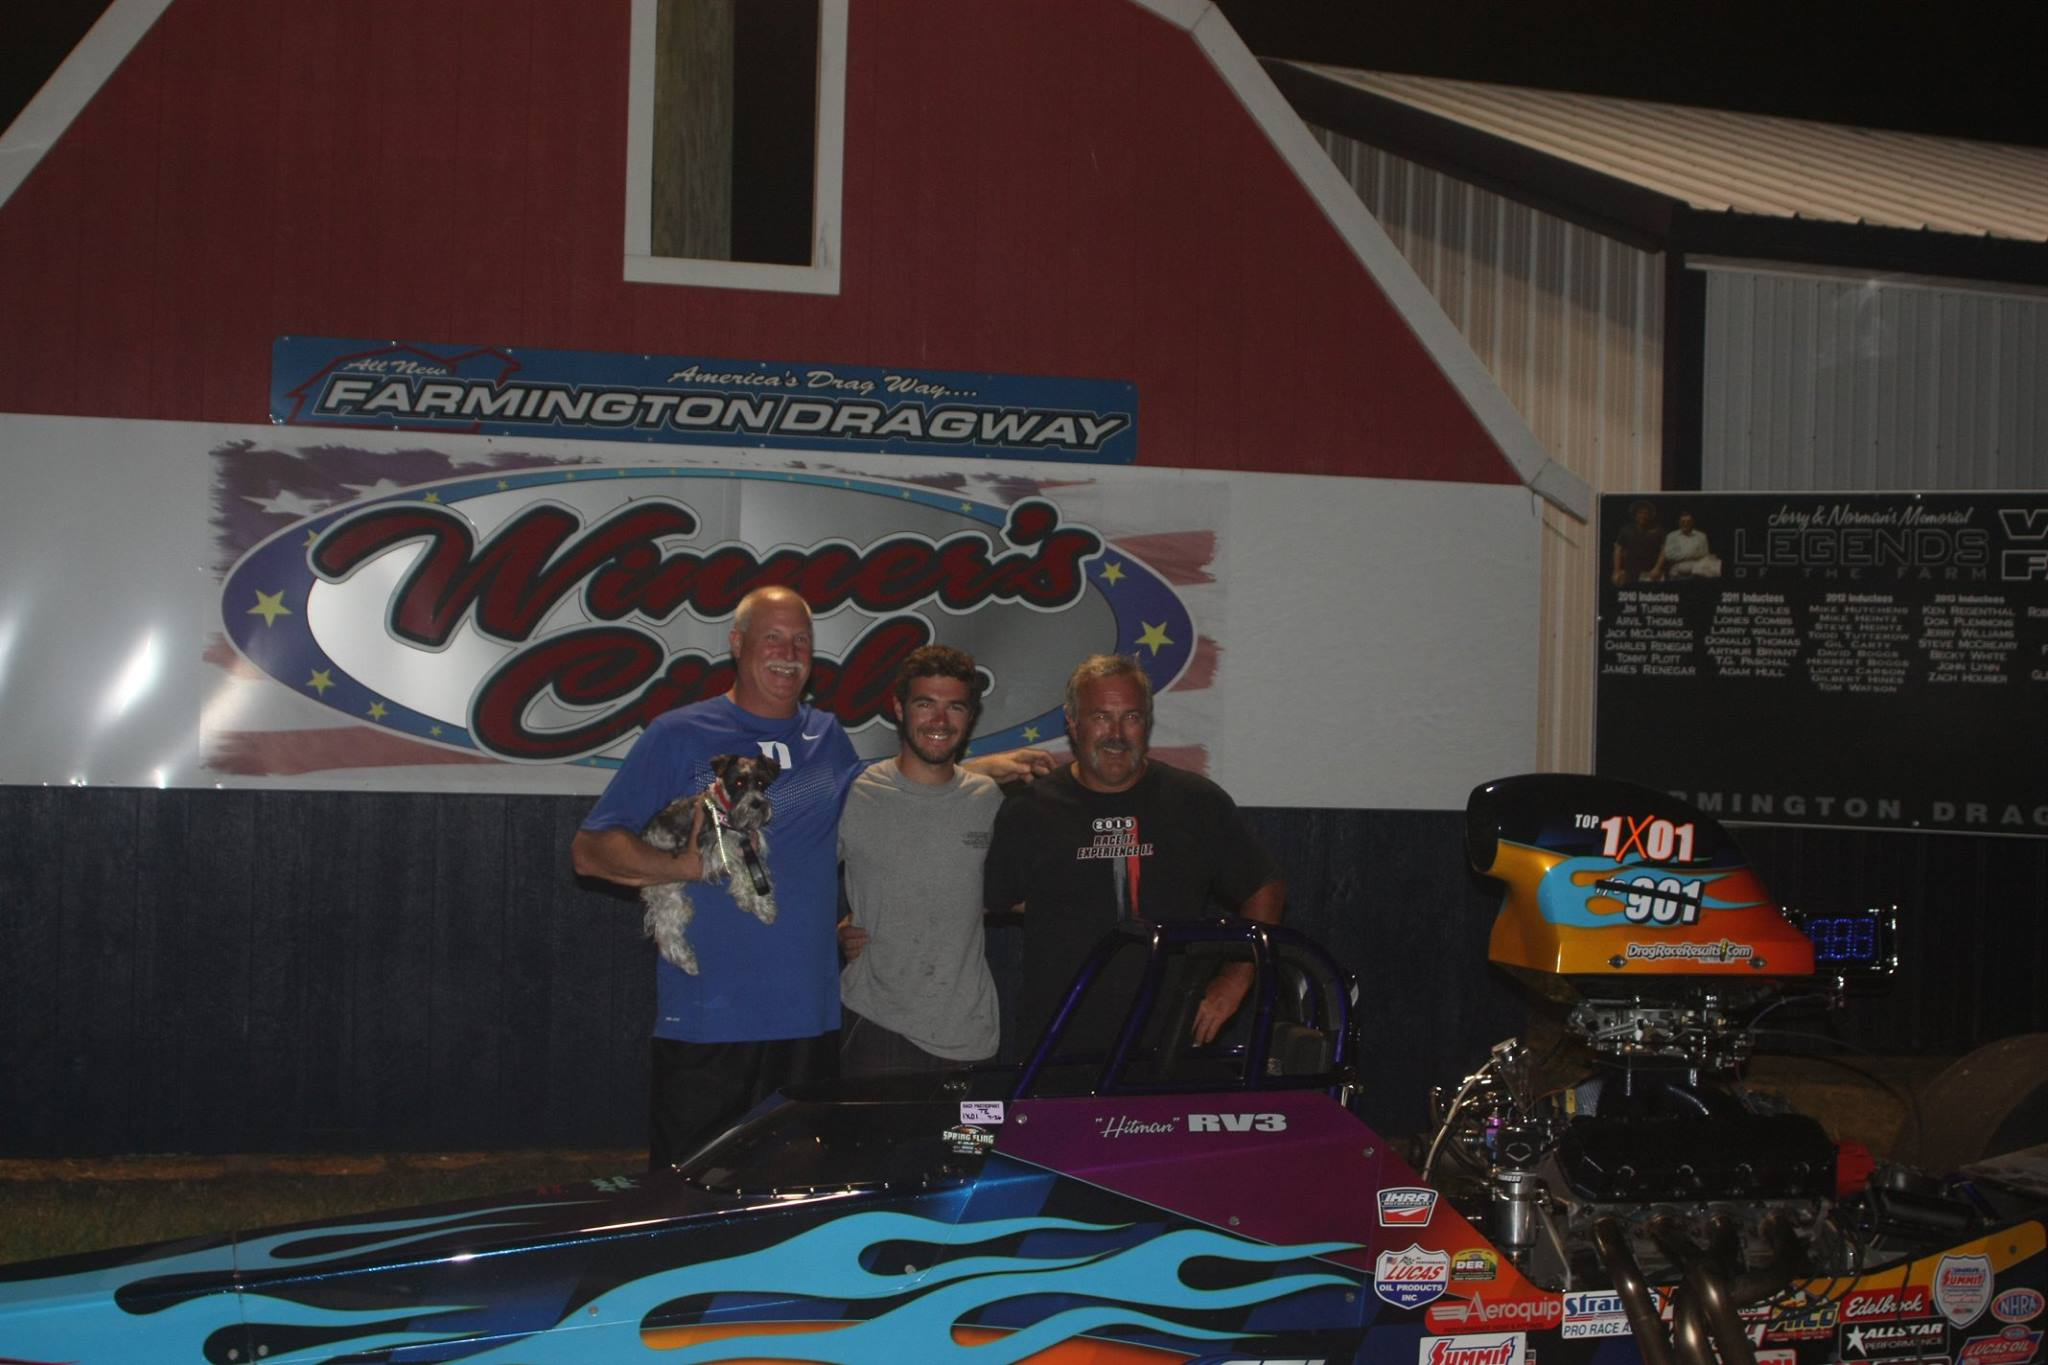 Robert Vogler III Crowned Farmington Dragway Track Champion with Race Tech Dragster